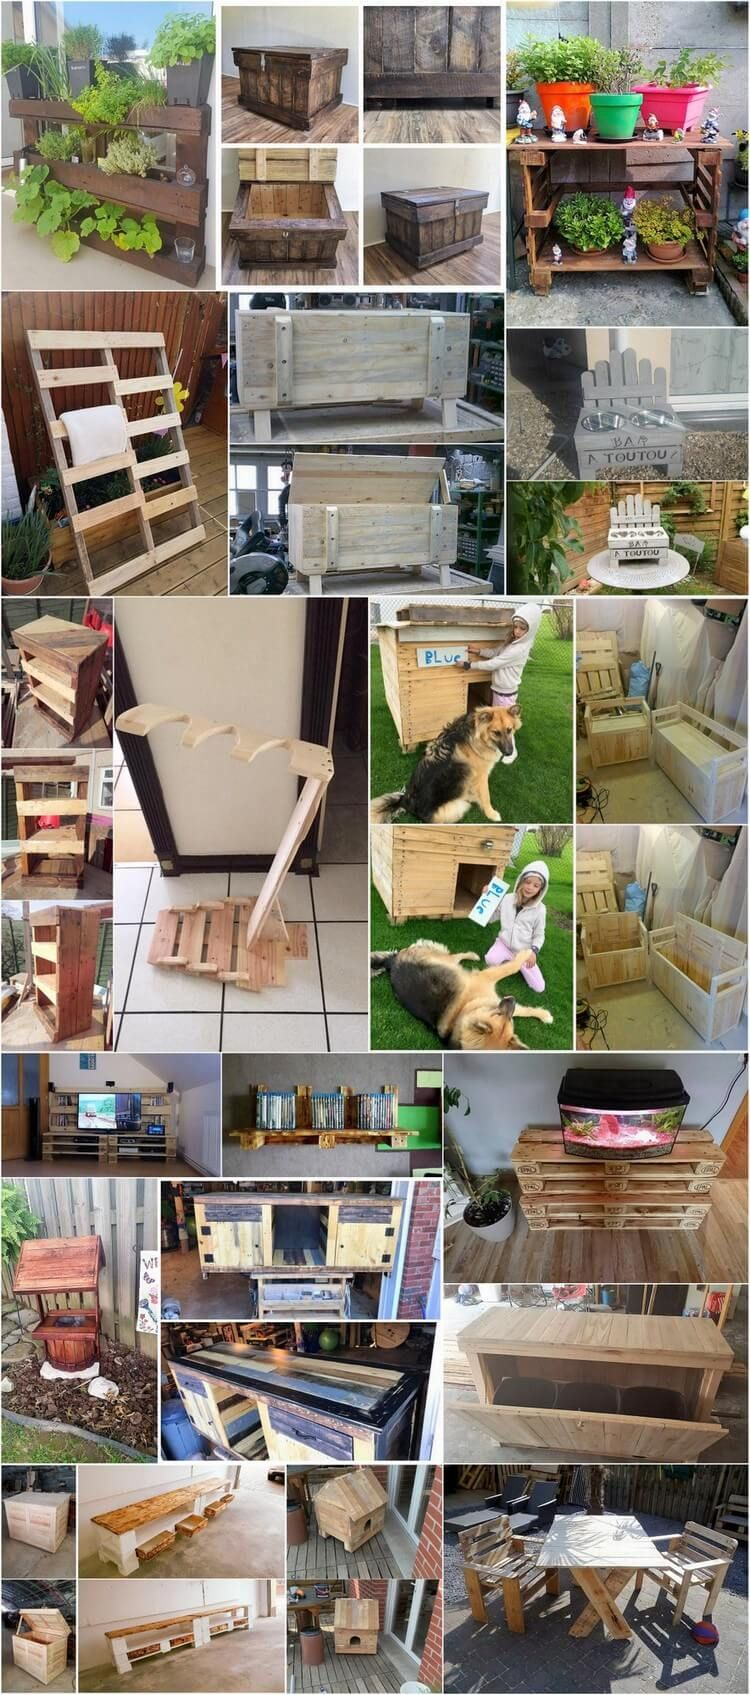 Innovative Ideas to Upcycle Old Wood Pallets | Home and Garden ...